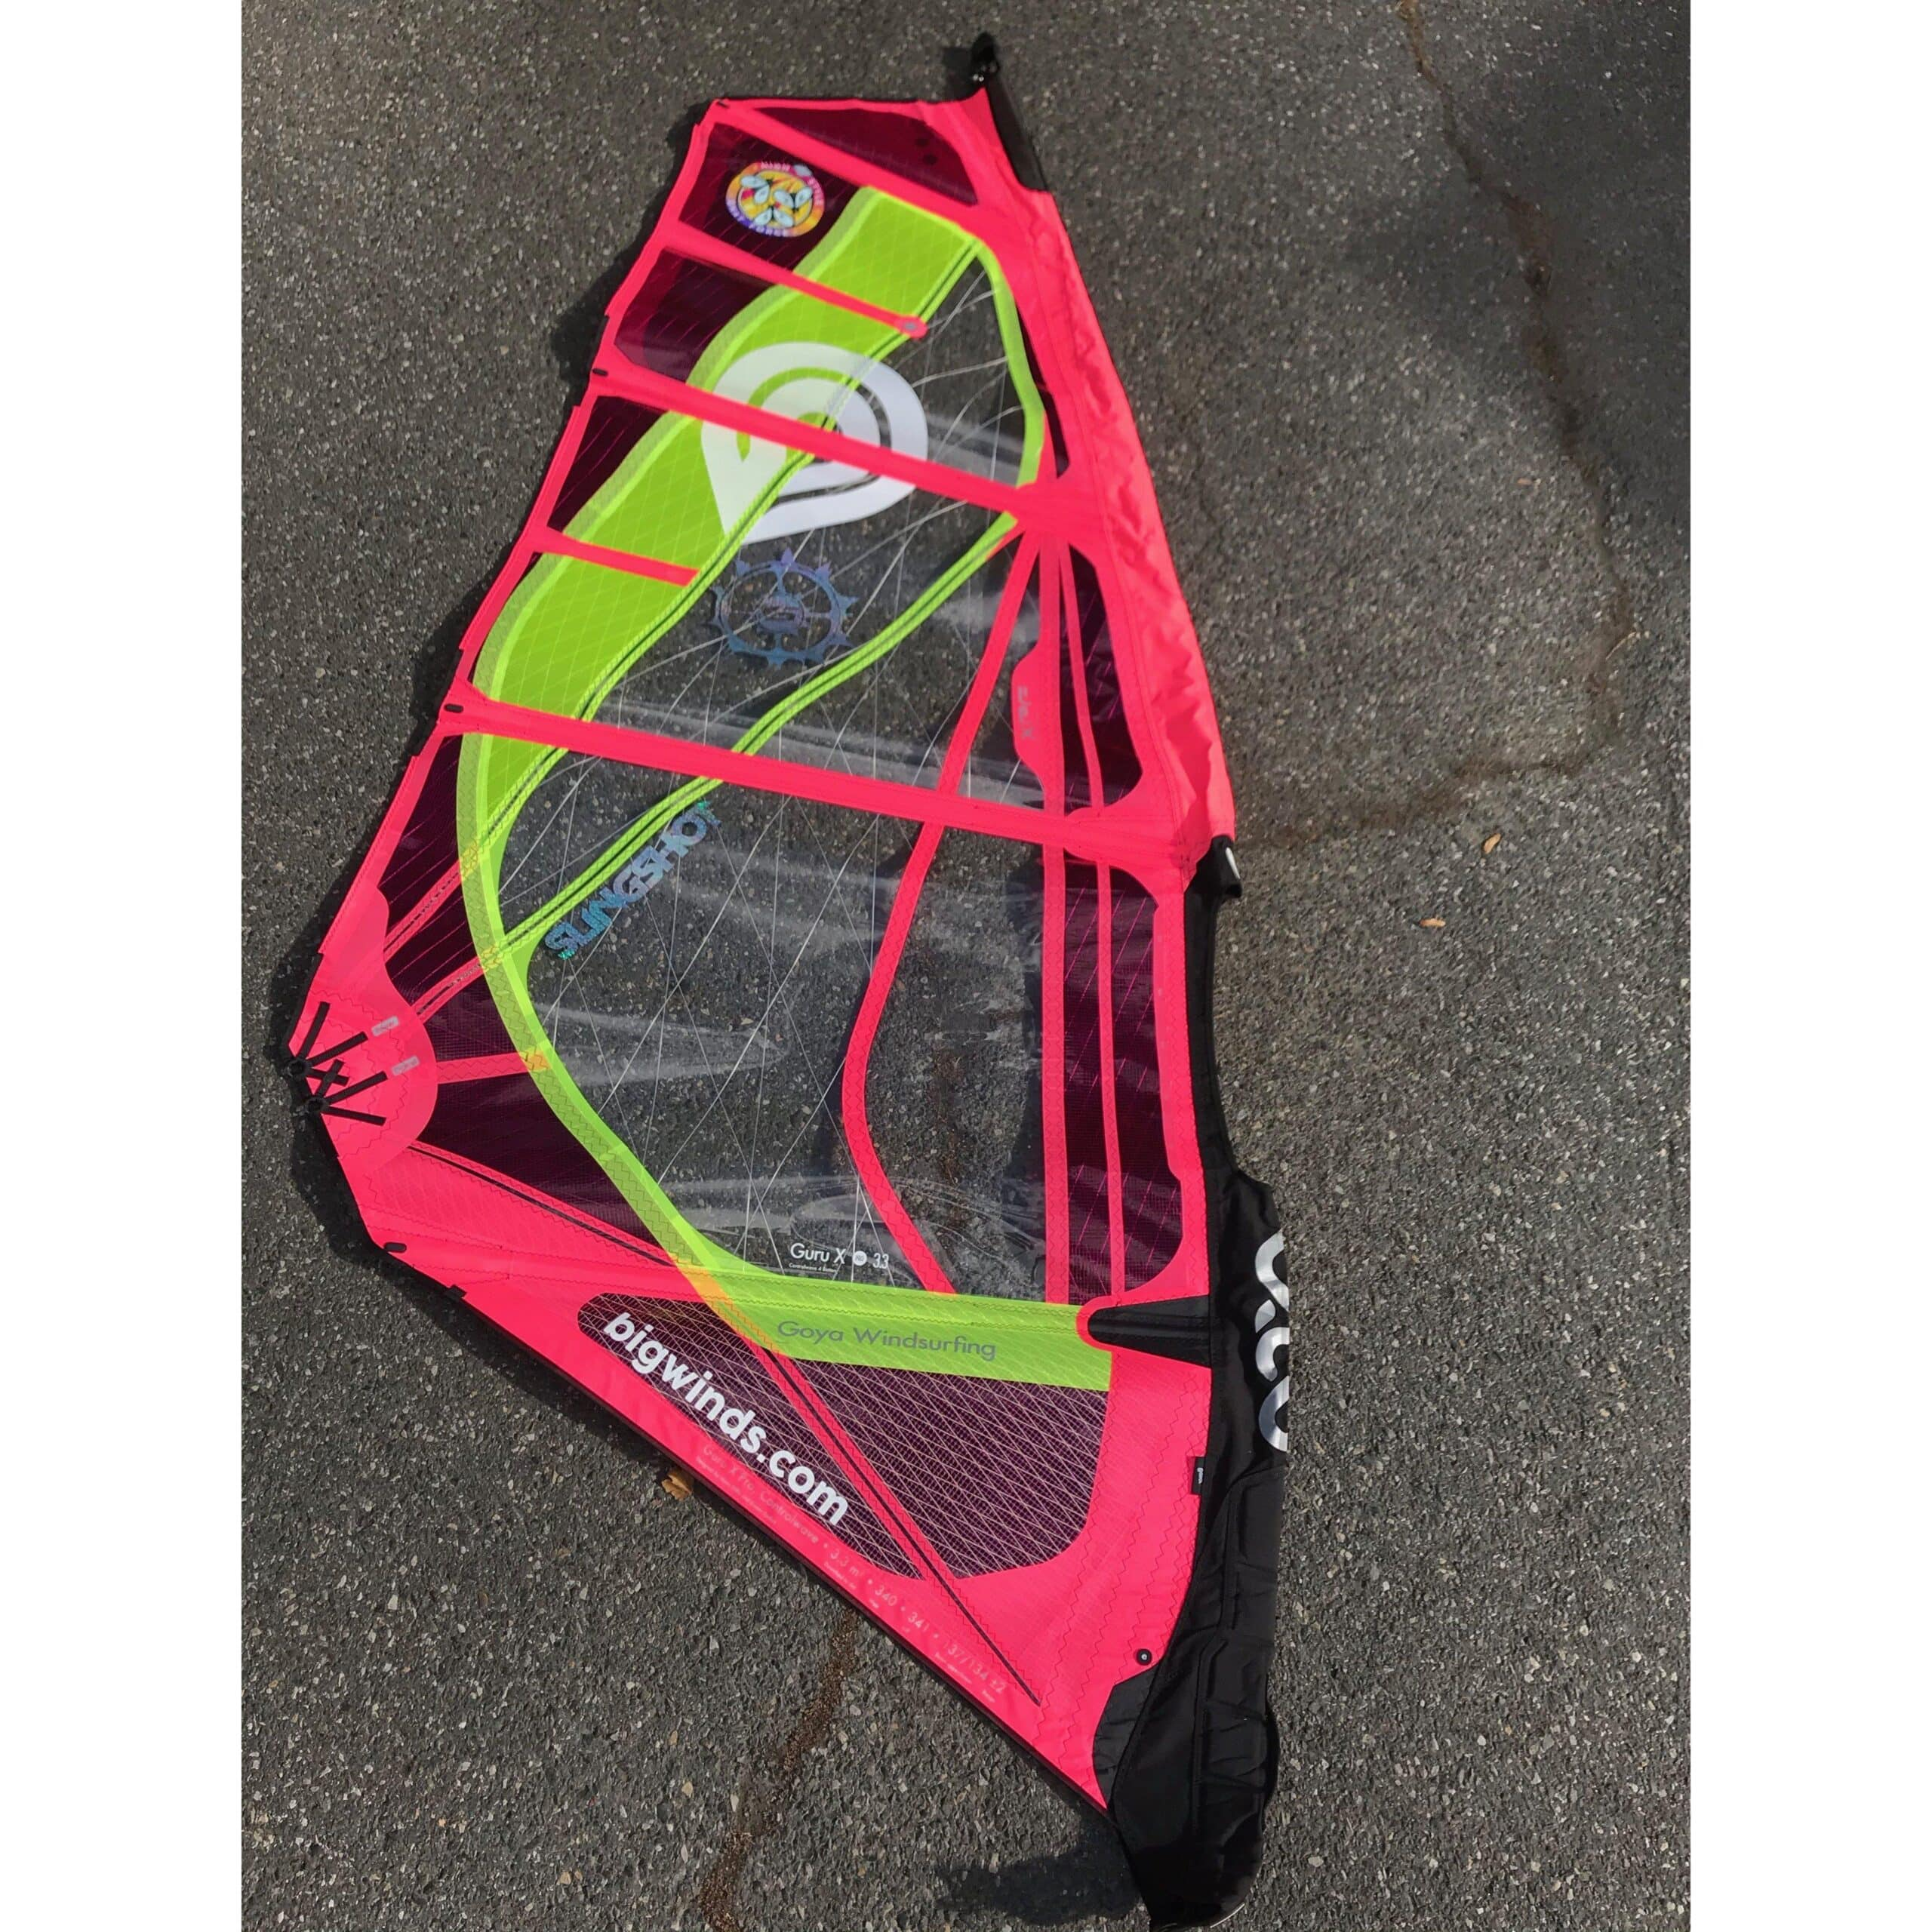 Used Windsurf Gear